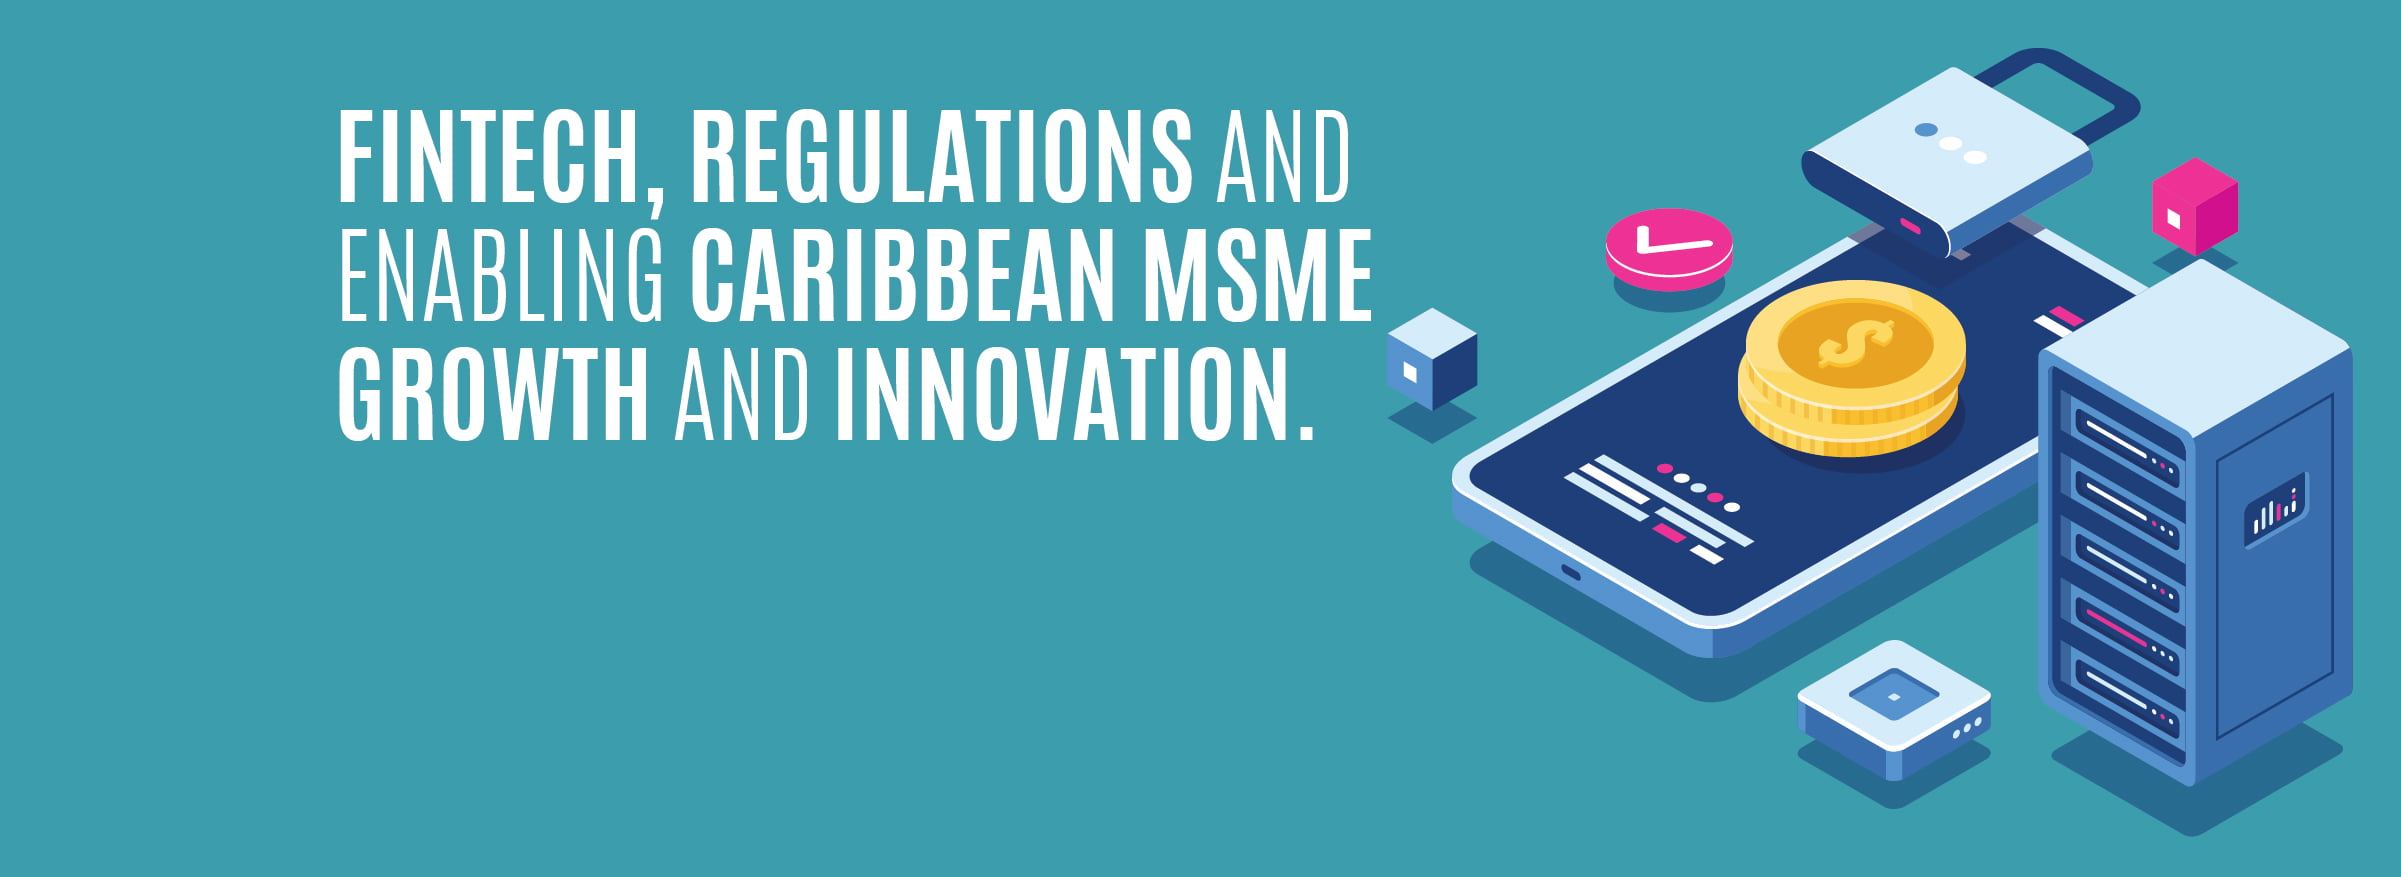 Fintech and Regulation for Caribbean Growth and Innovation